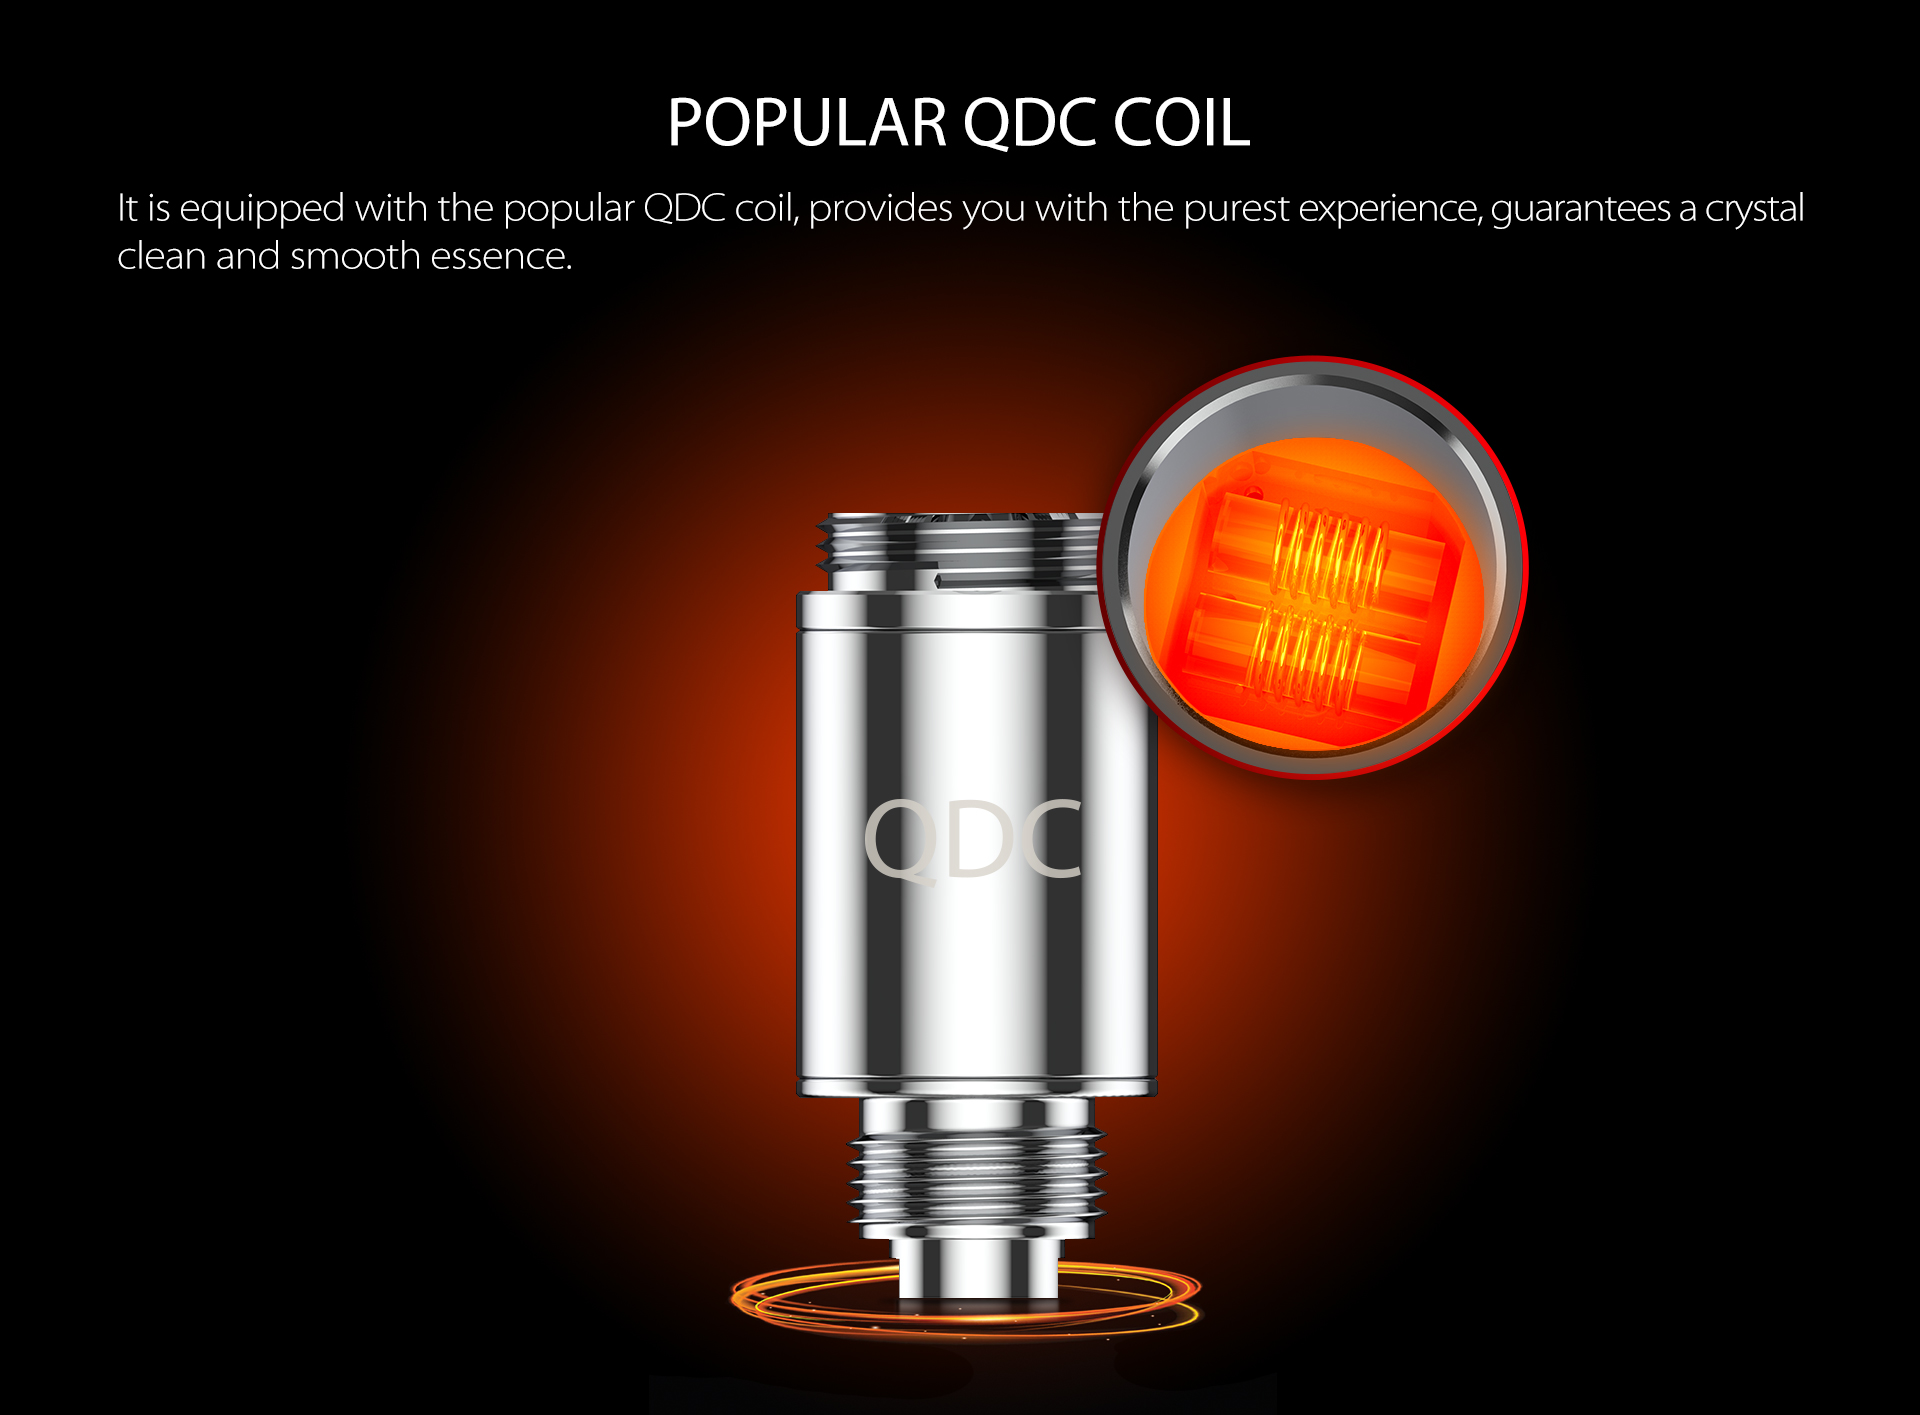 Yocan Apex Mini vape pen is equipped with the popular QDC coil